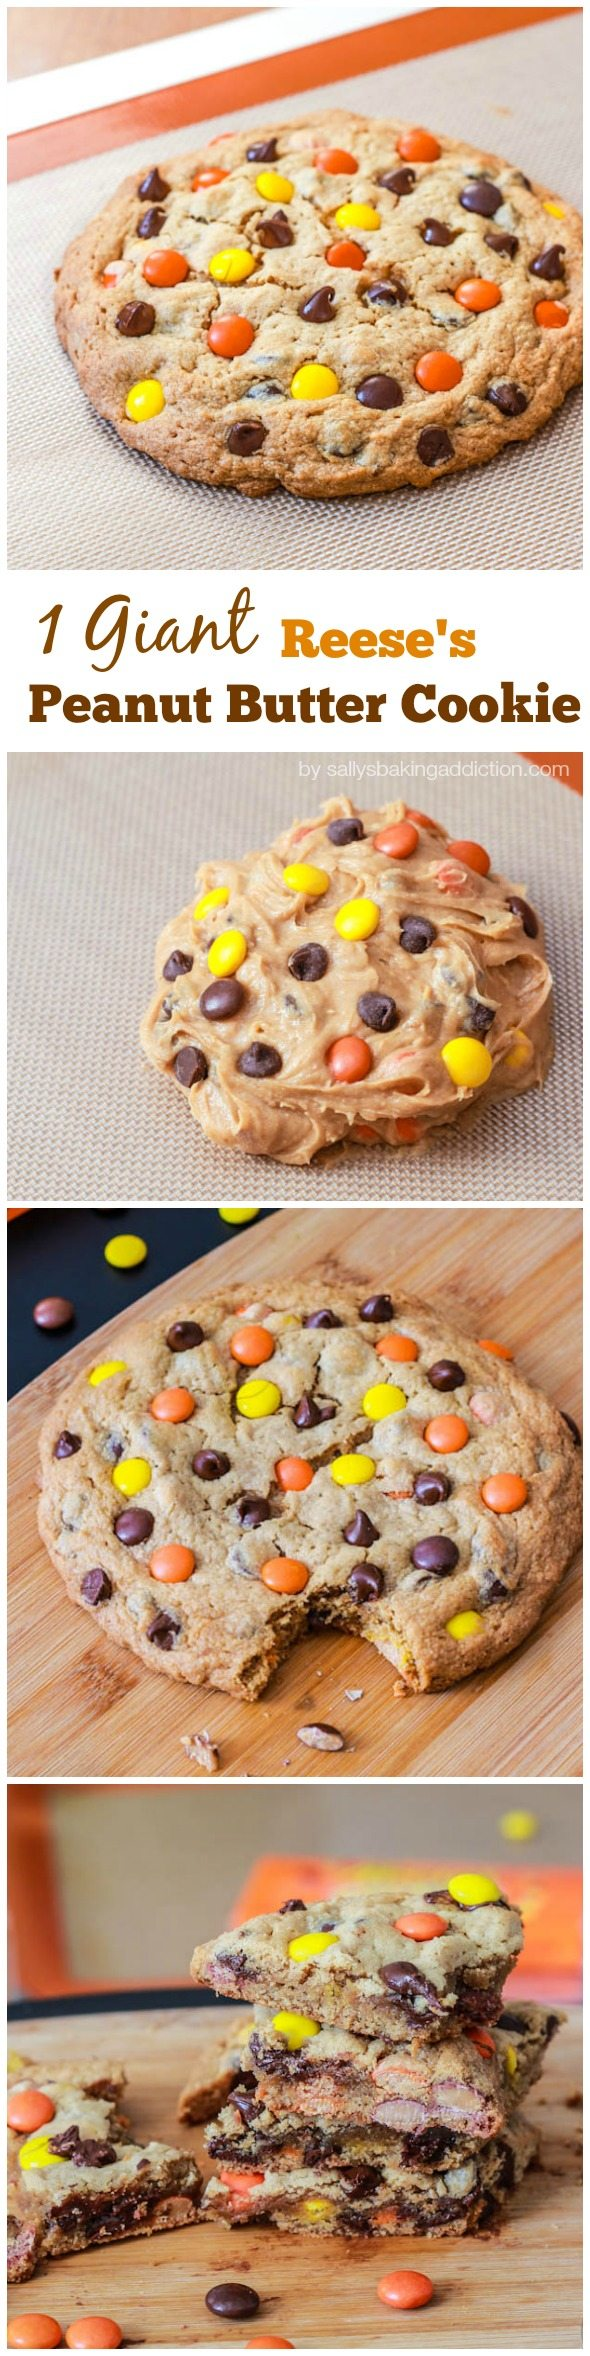 1 Giant Reese's Pieces Peanut Butter Cookie